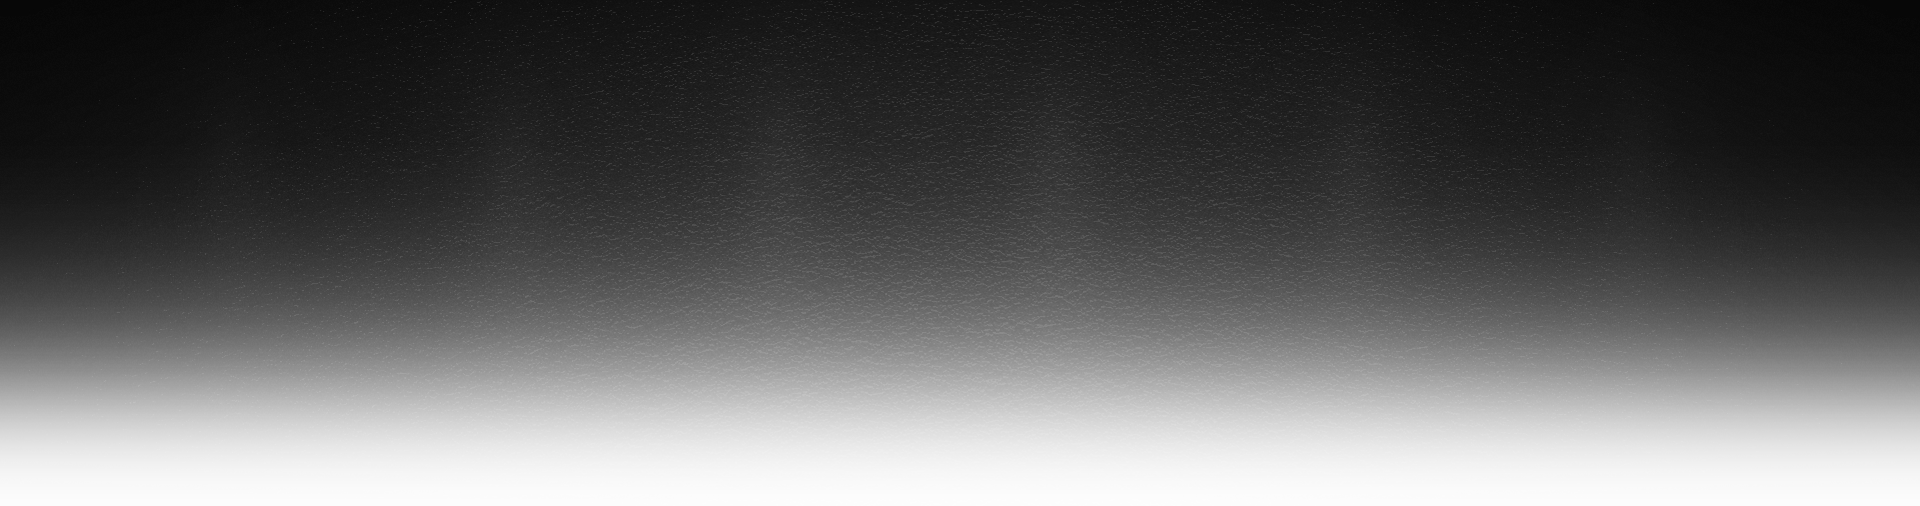 Black shadow png. Index of images shadowpng